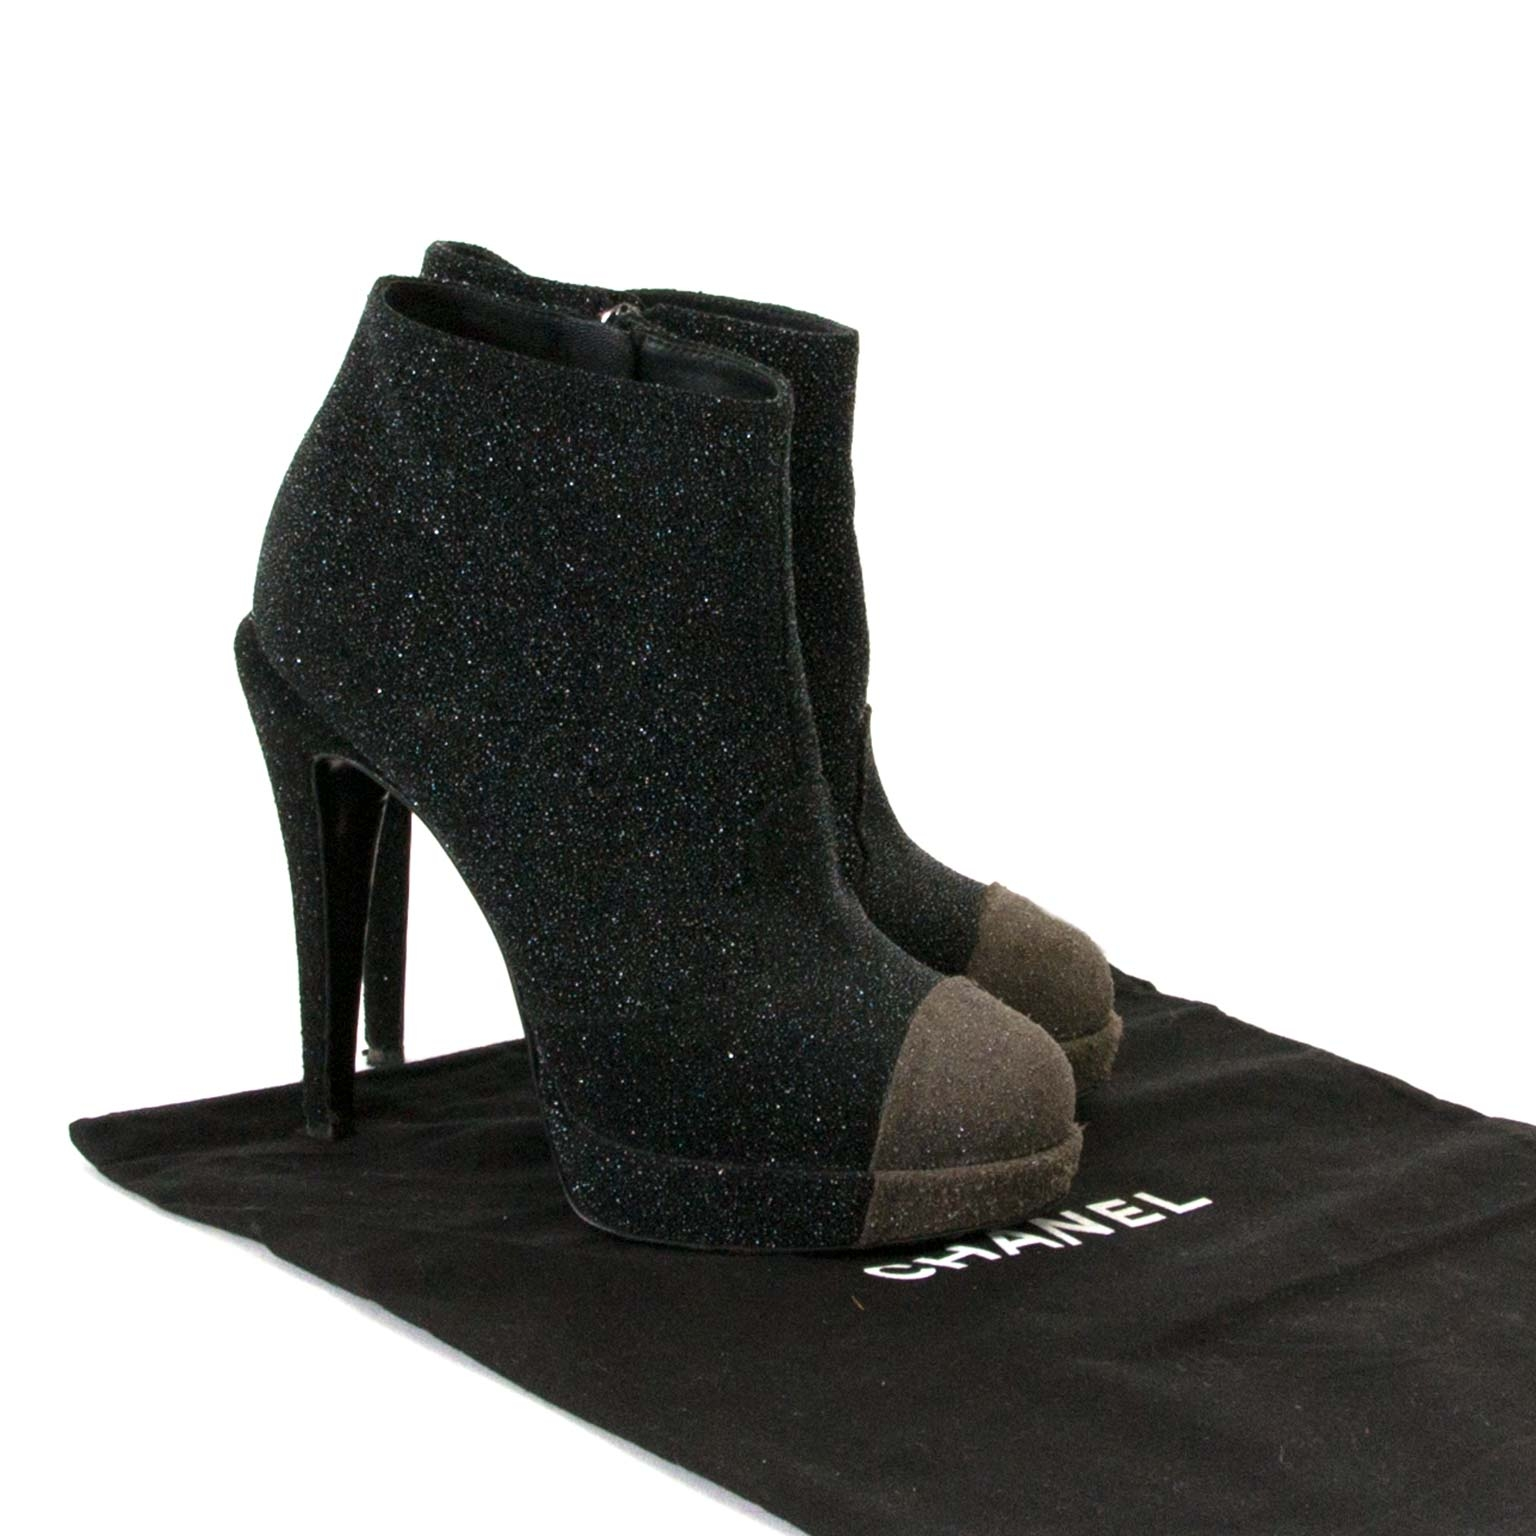 63bc59eb2348 ... Chanel Black Sparkle Ankle Boots - size 36 now for sale at labellov  vintage fashion webshop